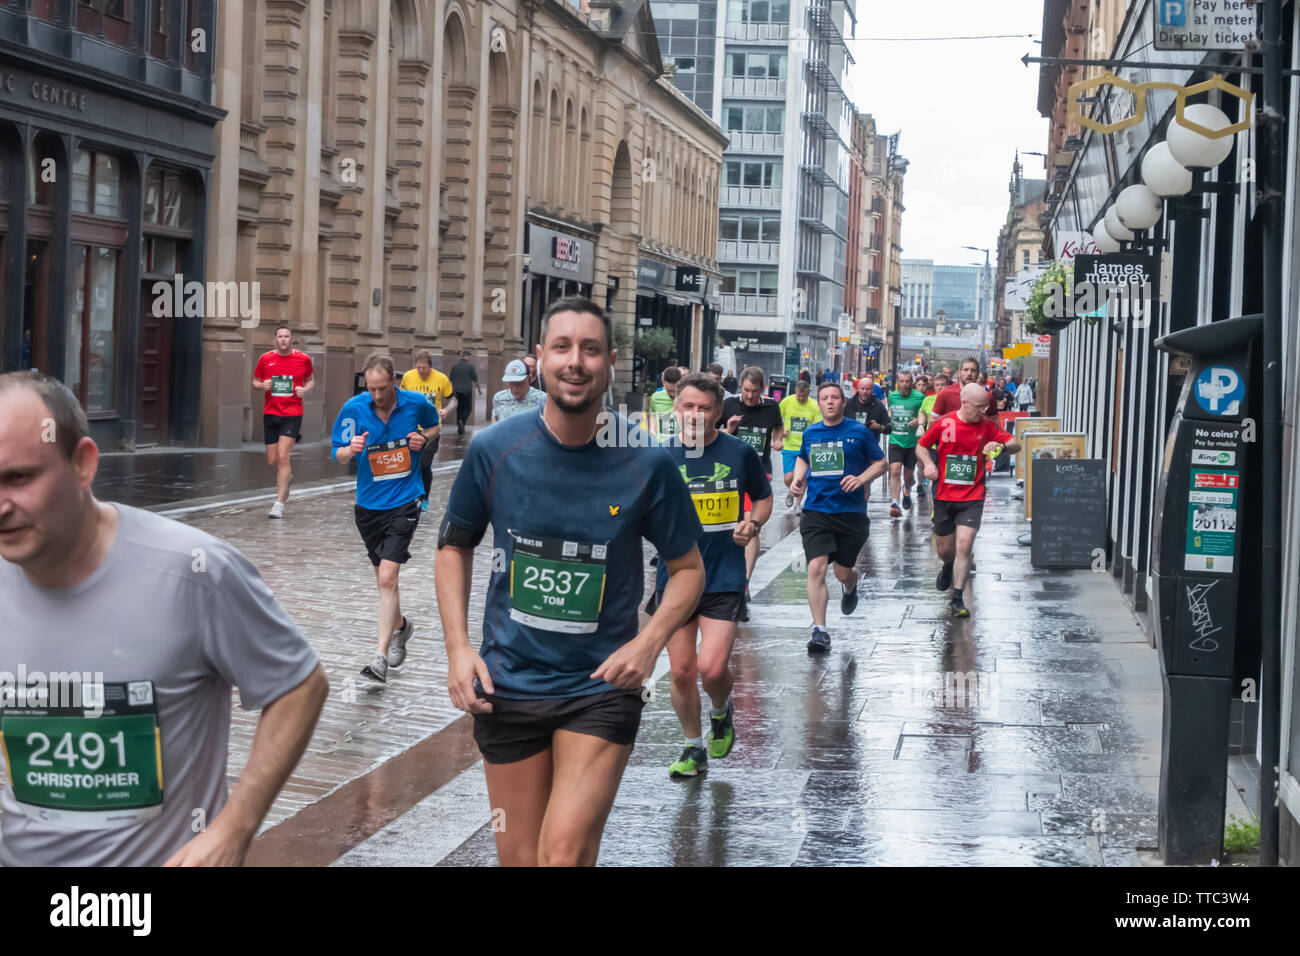 Glasgow, Scotland, UK. 16th June, 2019. Runners at Candelriggs during the Men's 10K Run which has been an annual event since 2004. Thousands of runners take to the streets of the city to get fit, fundraise, and raise awareness of men's health issues. The run coincides with Fathers Day and starts at the Riverside Museum and  finishes at George Square. Credit: Skully/Alamy Live News - Stock Image